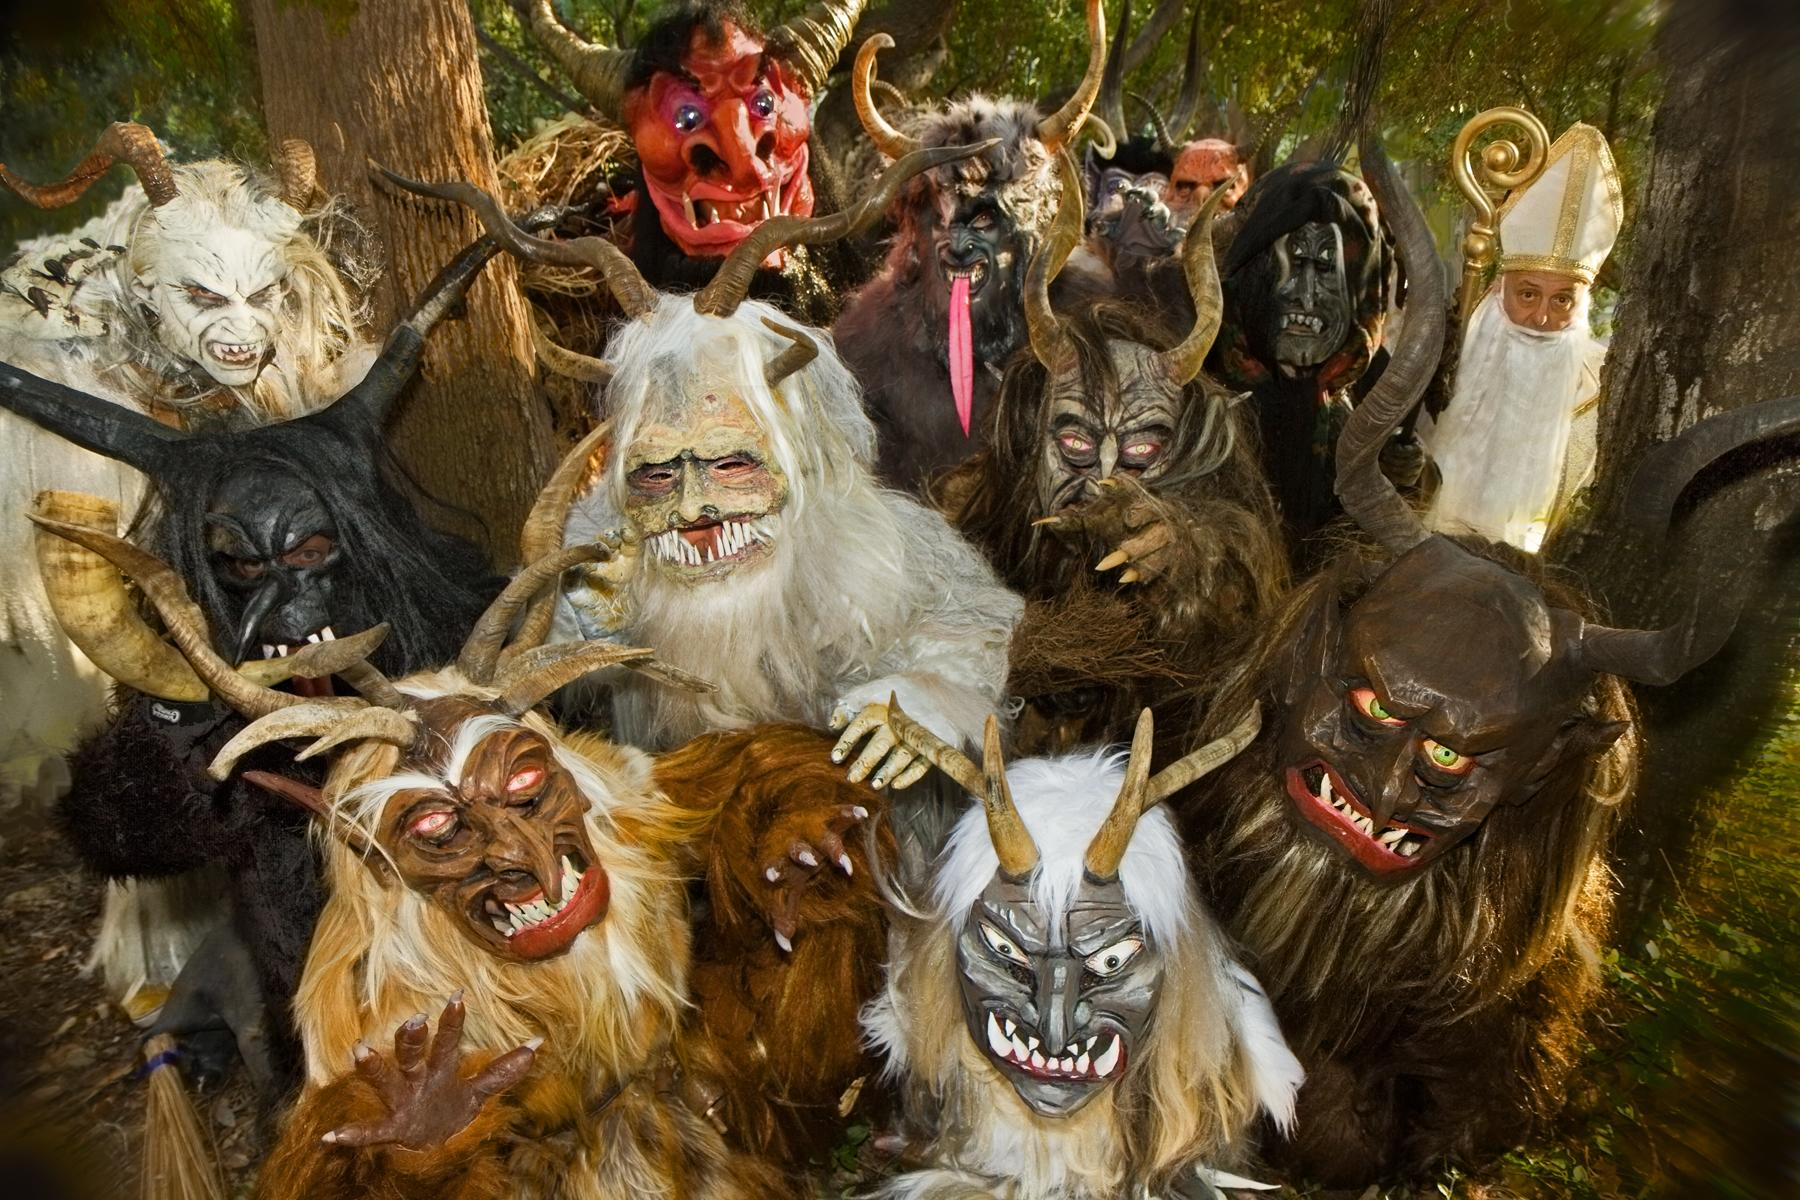 unique-ways-celebrate-holidays-los-angeles-krampus